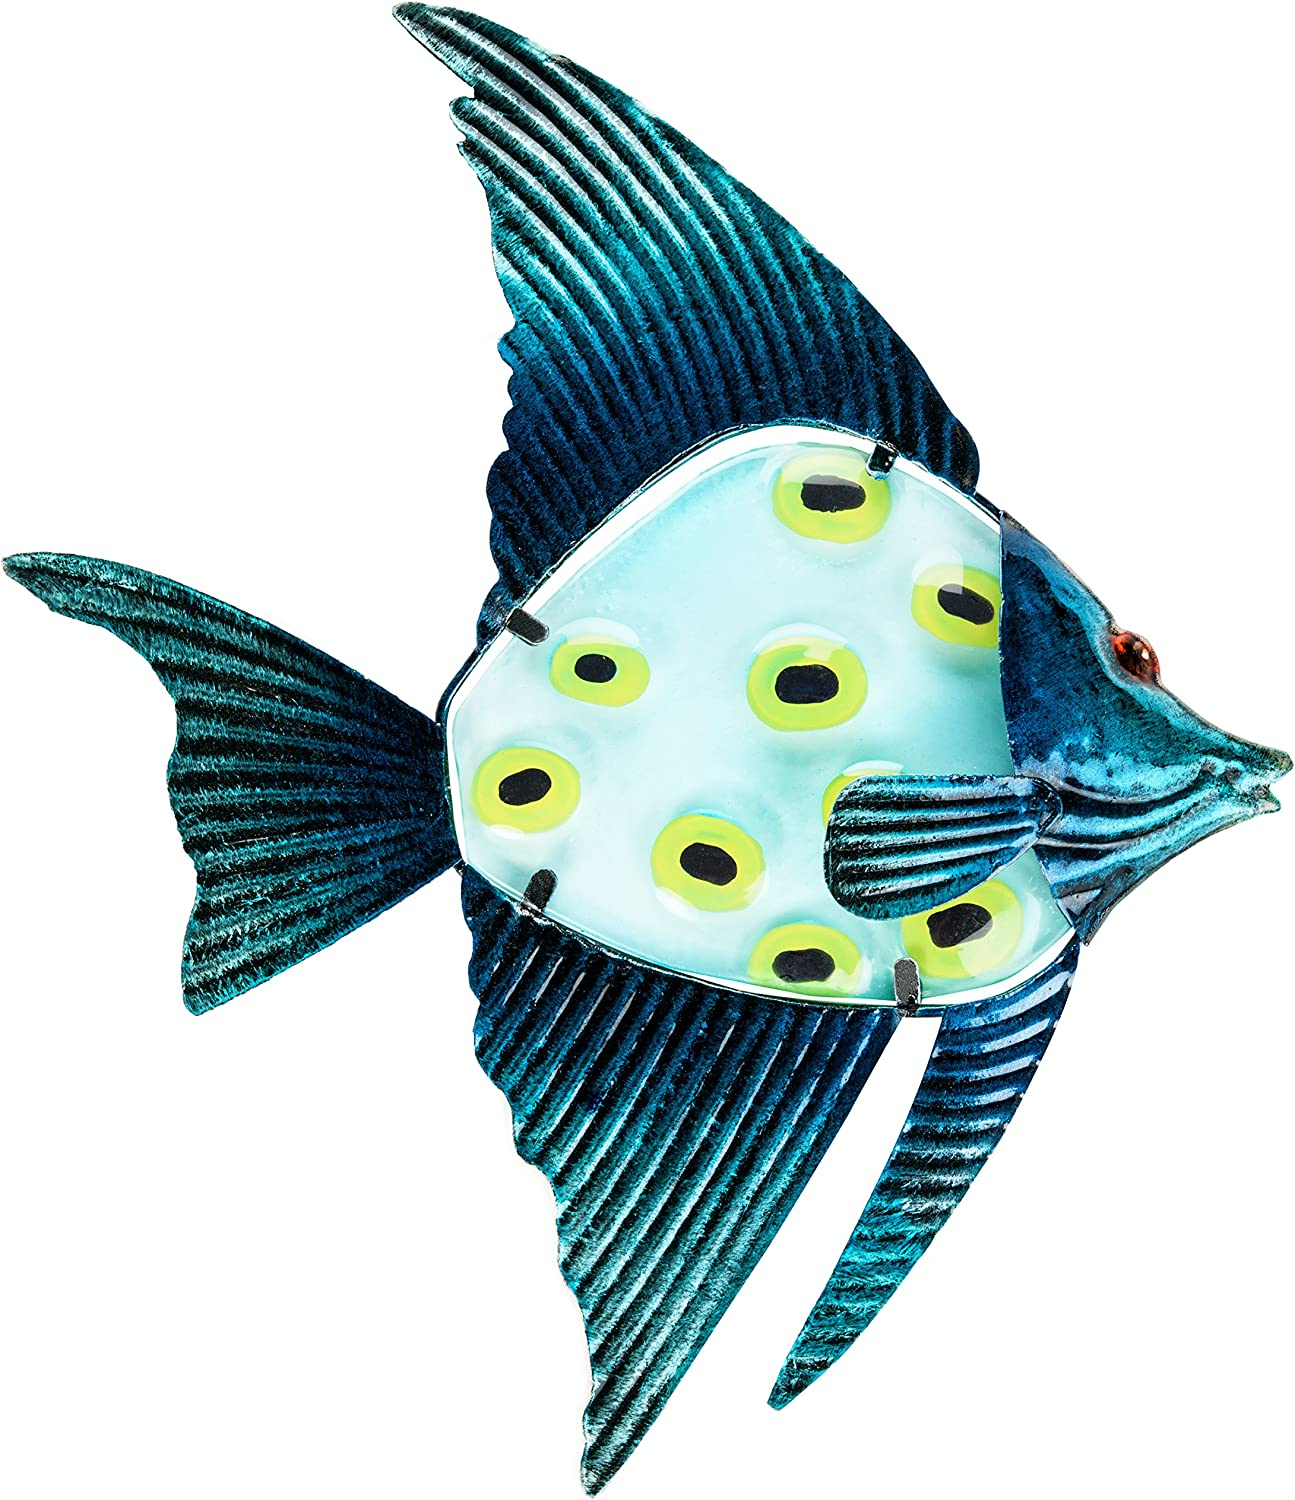 Amazon Com Patio Eden Nautical Fish Wall Art Decor Perfect Indoor Or Outdoor Hanging Beach Decoration 12 5 X 10 Inches Garden Outdoor